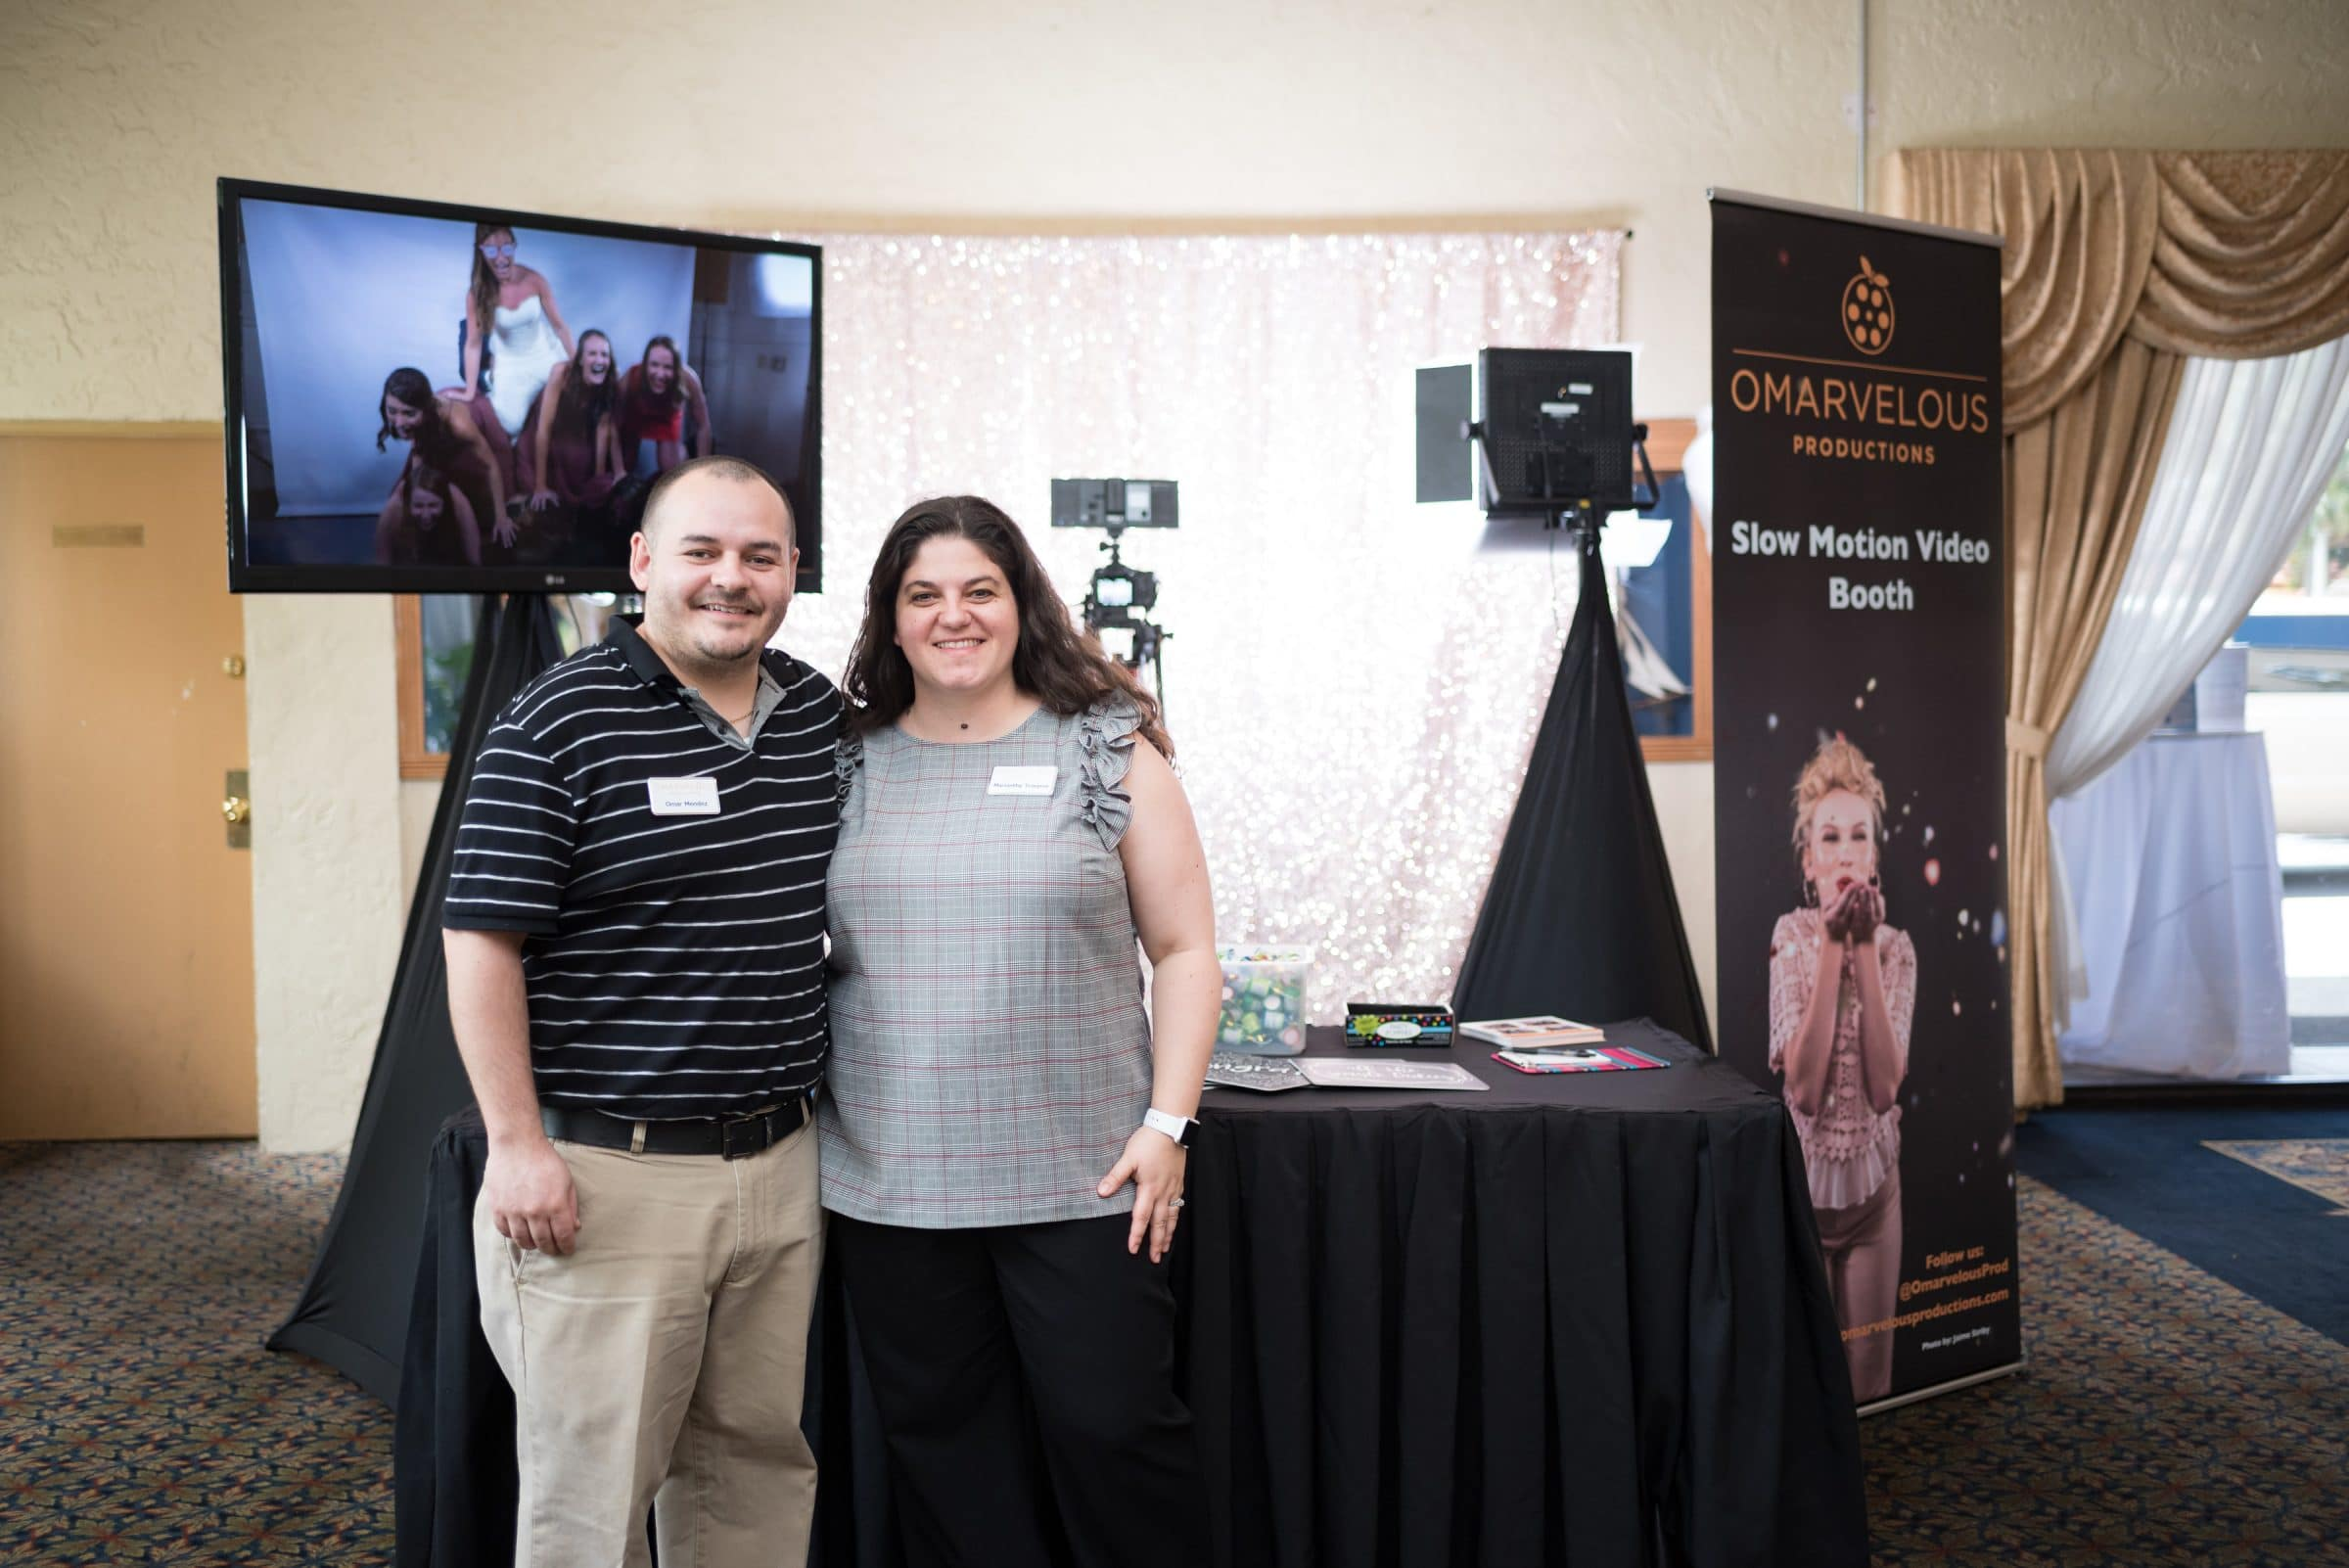 Man and Women standing in front of black table with slow motion video booth